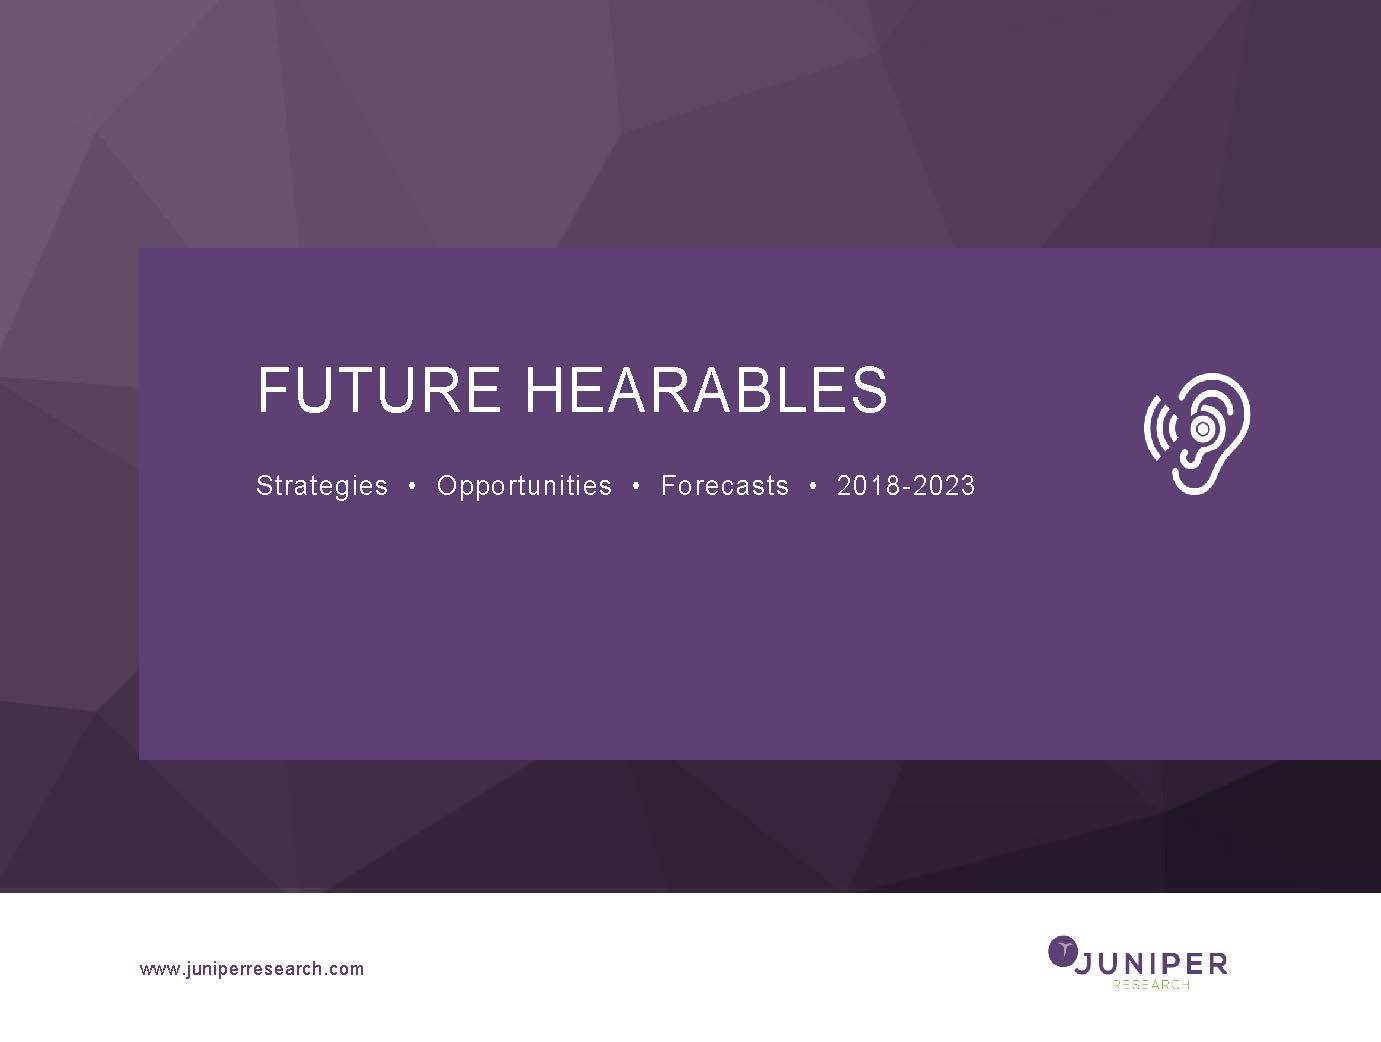 Future Hearables: Strategies, Opportunities & Forecasts 2018-2023 Full Research Suite